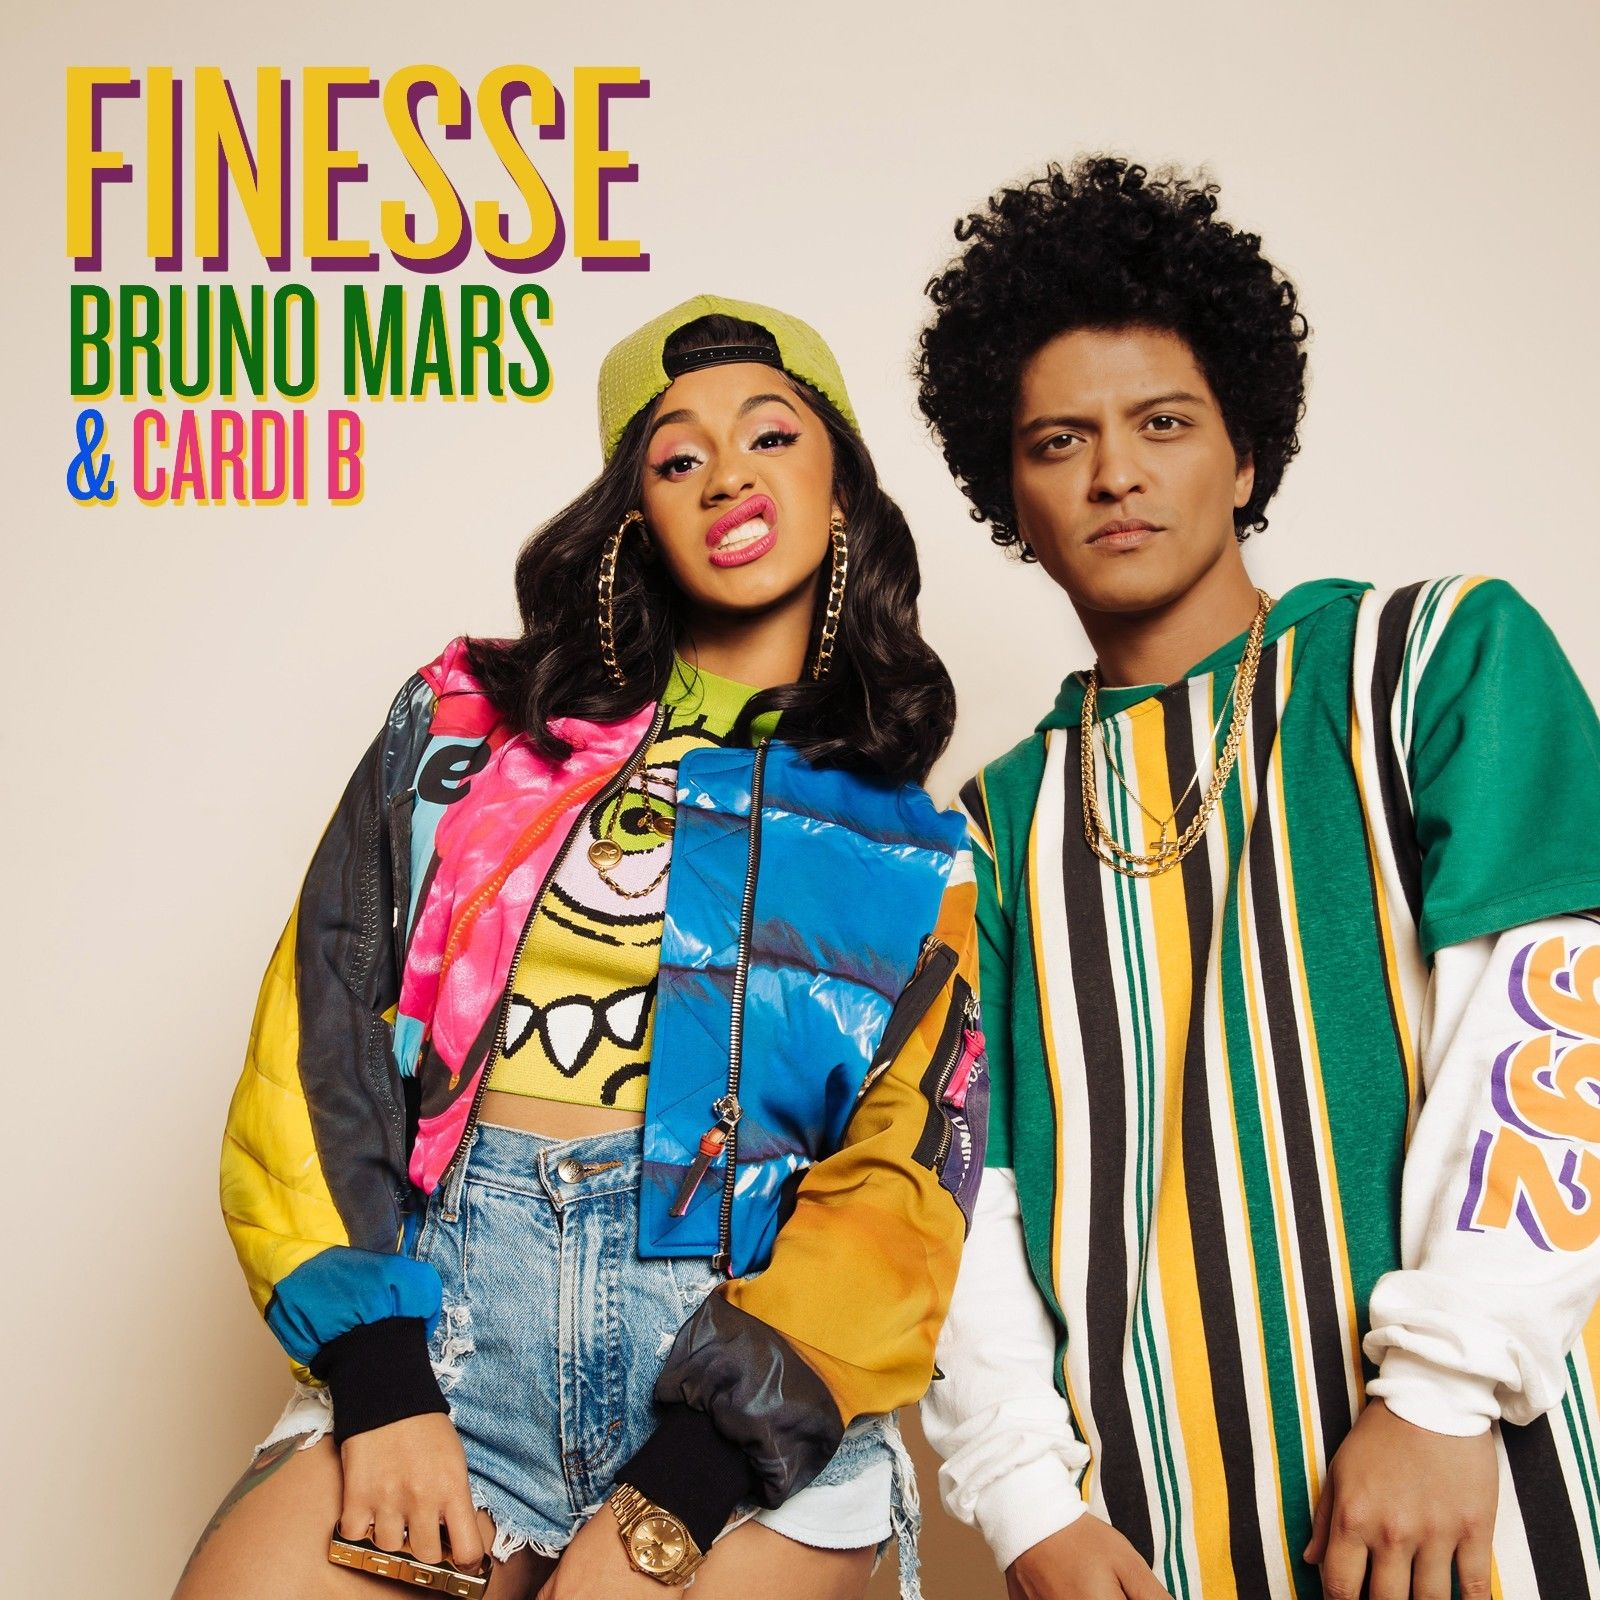 FOR DOWNLOAD LOVE SIDORA MUSICA FEATURING MARIO GRÁTIS THE DREW